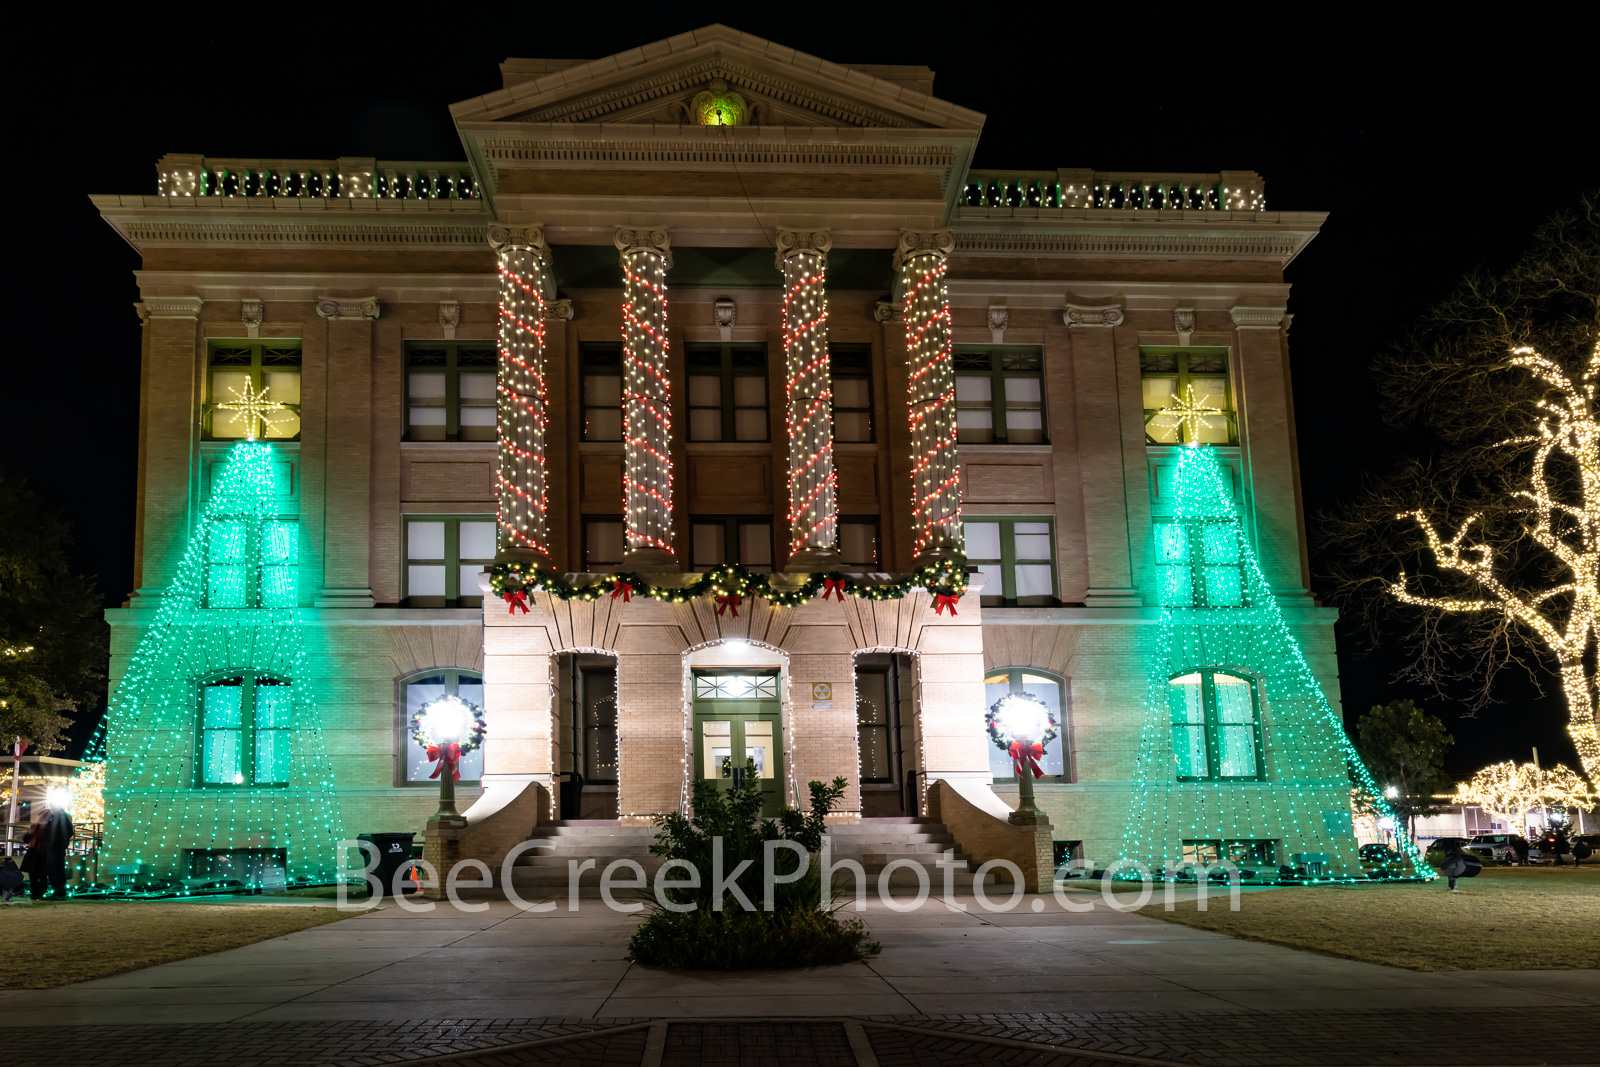 georgetown texas christmas, georgetown, texas, christmas, downtown, city, small town, christmas lights, holiday decorations, square, town square, williamson county courthouse, downtown georgetown, tre, photo